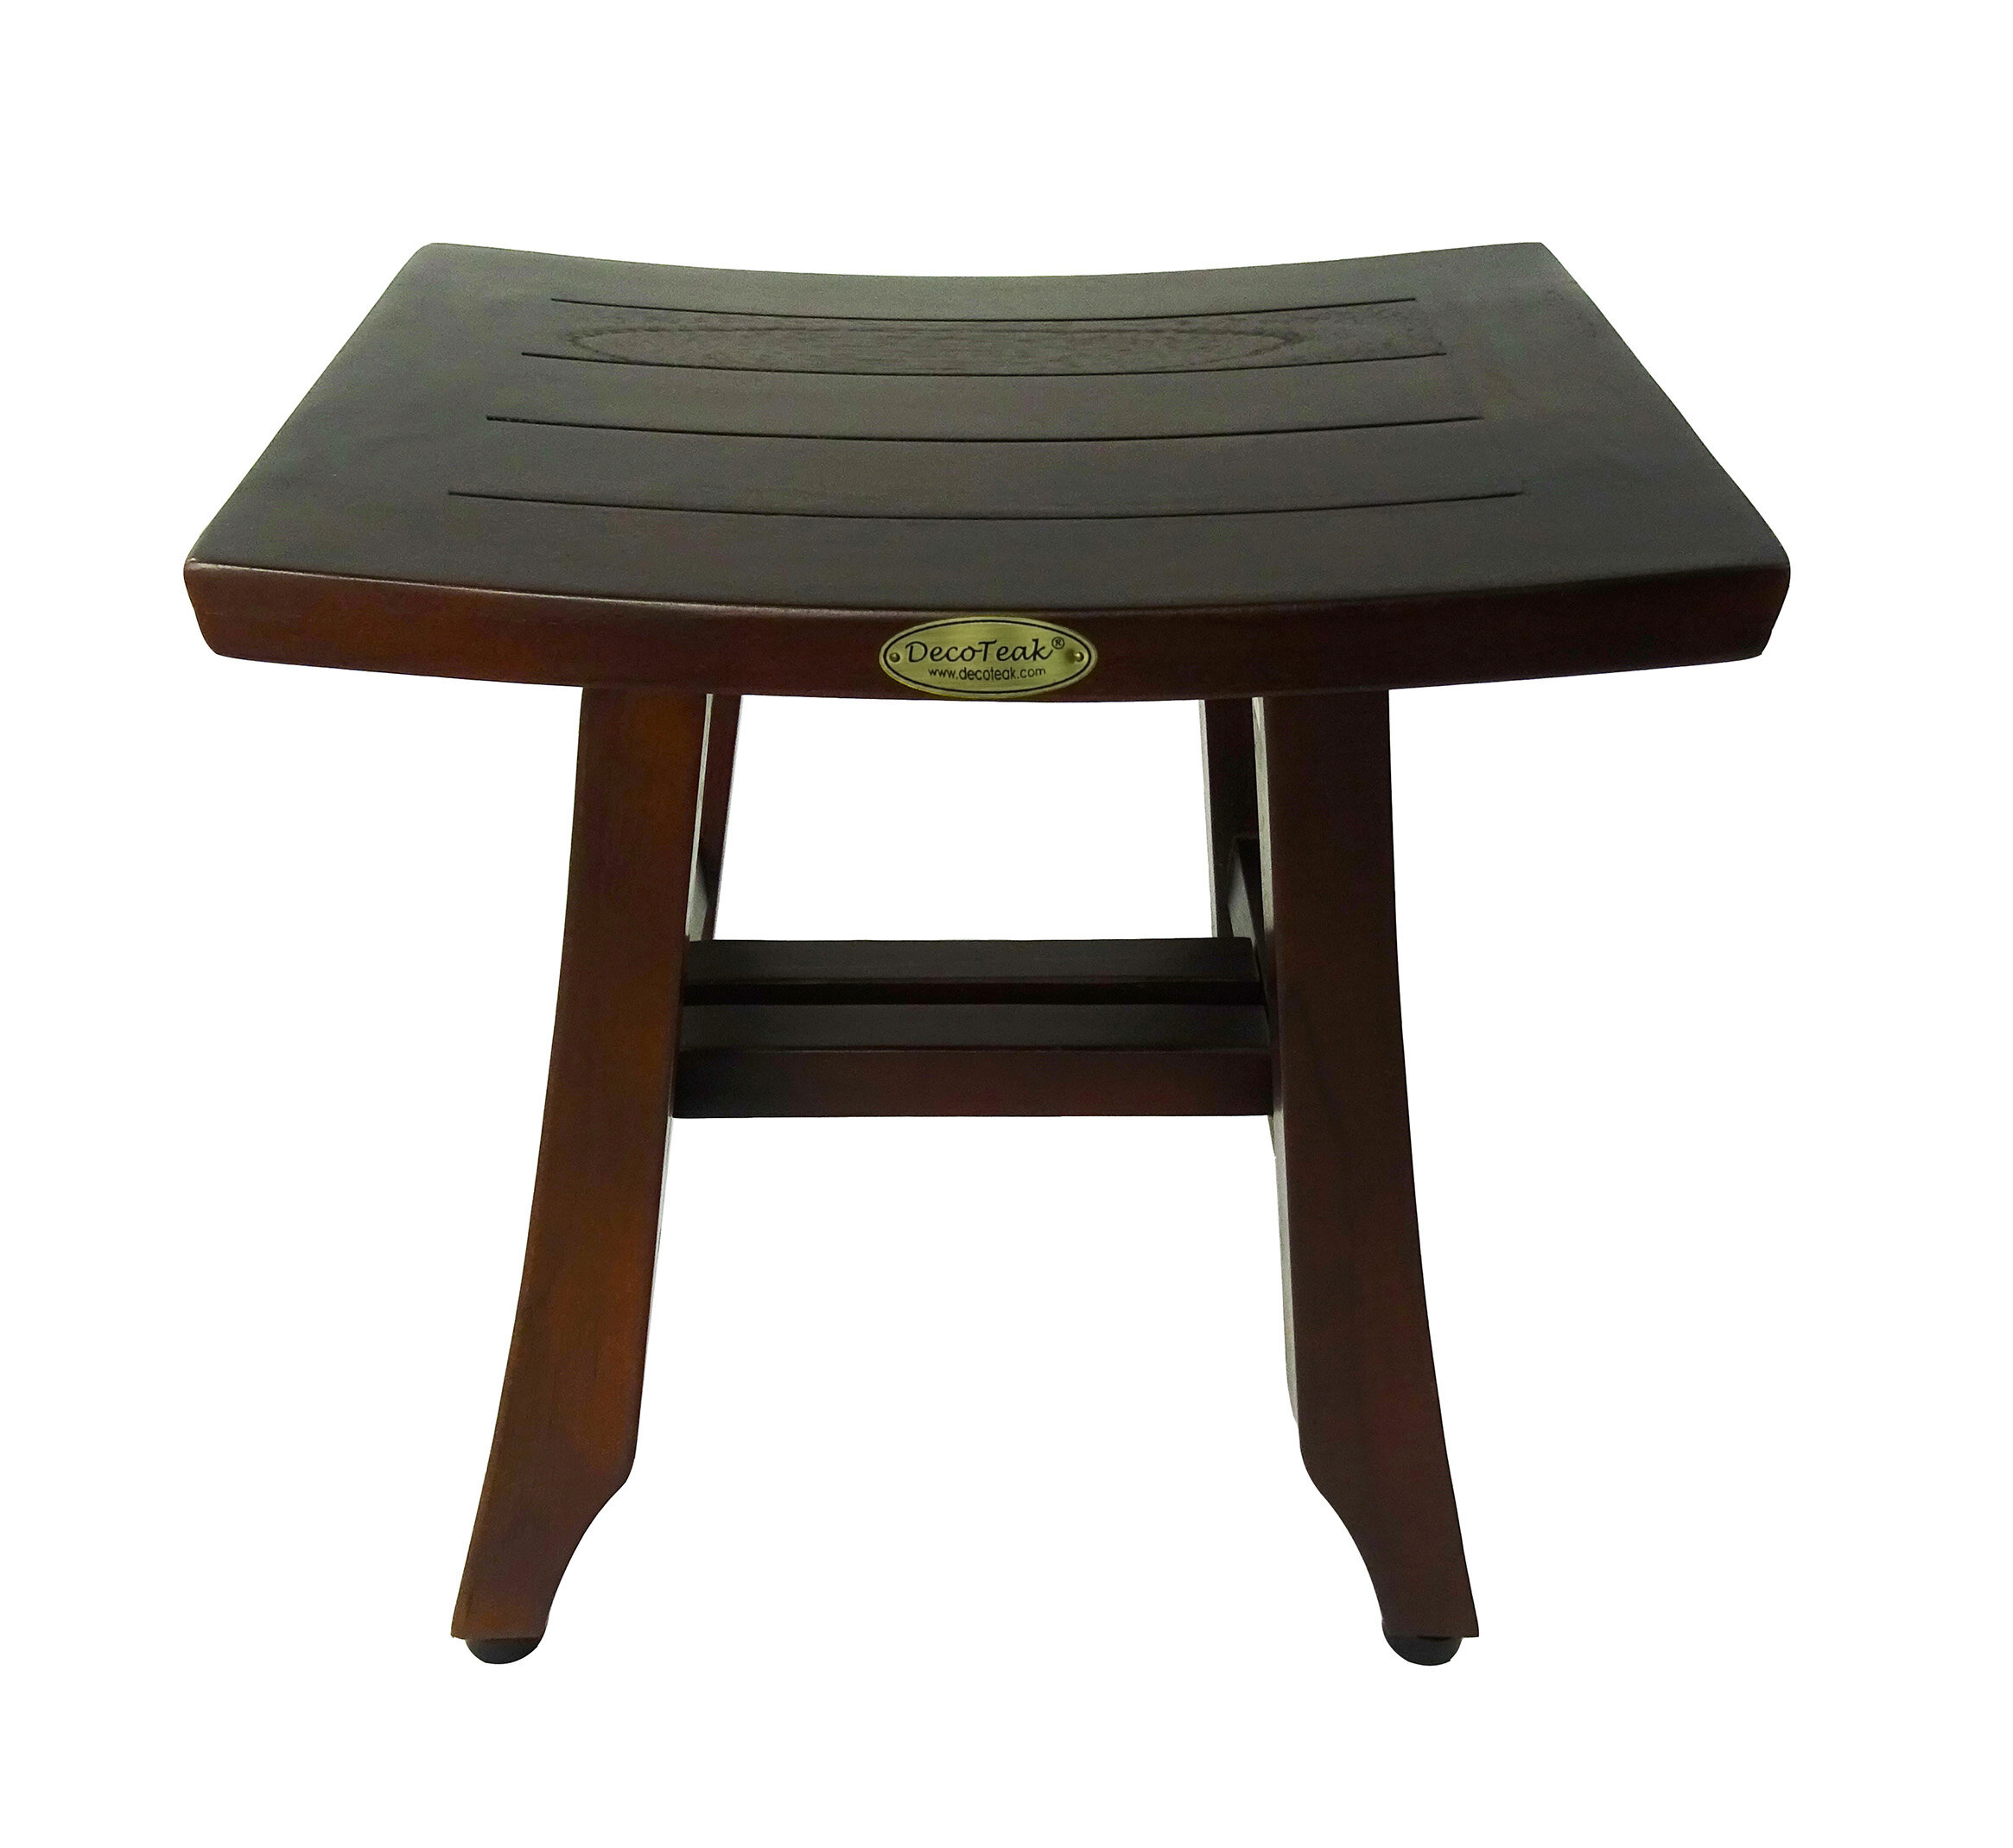 chairs stools weekly and design stool shower teak designs small geek